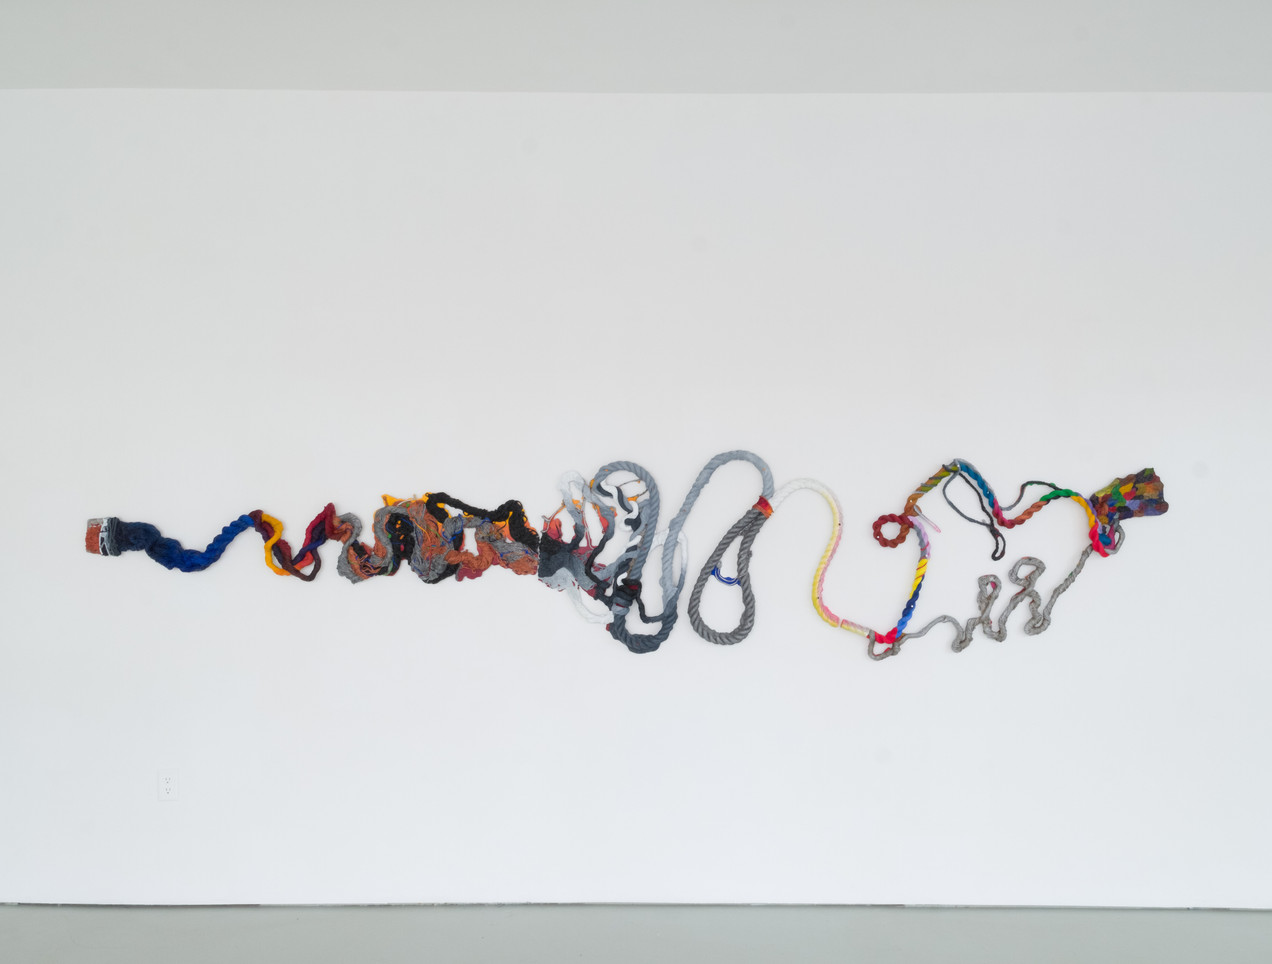 (itself; as far) Position, 2019 Oil and enamel paint, graphite on cast aluminum 36 x 170 x 2 inches